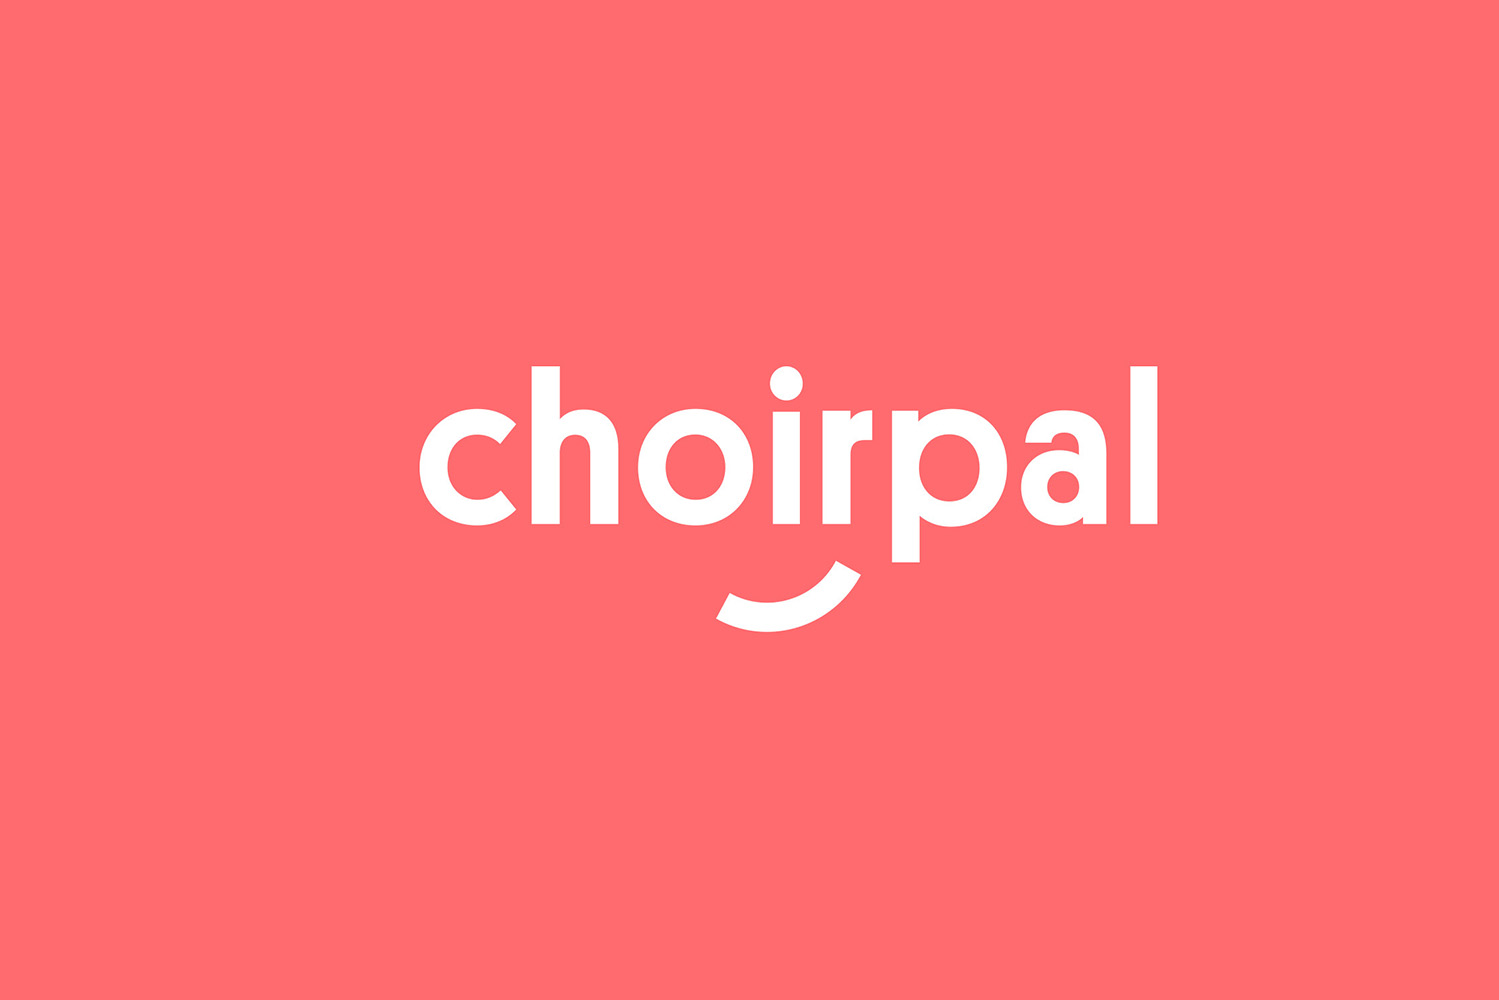 Cover image: Choirpal